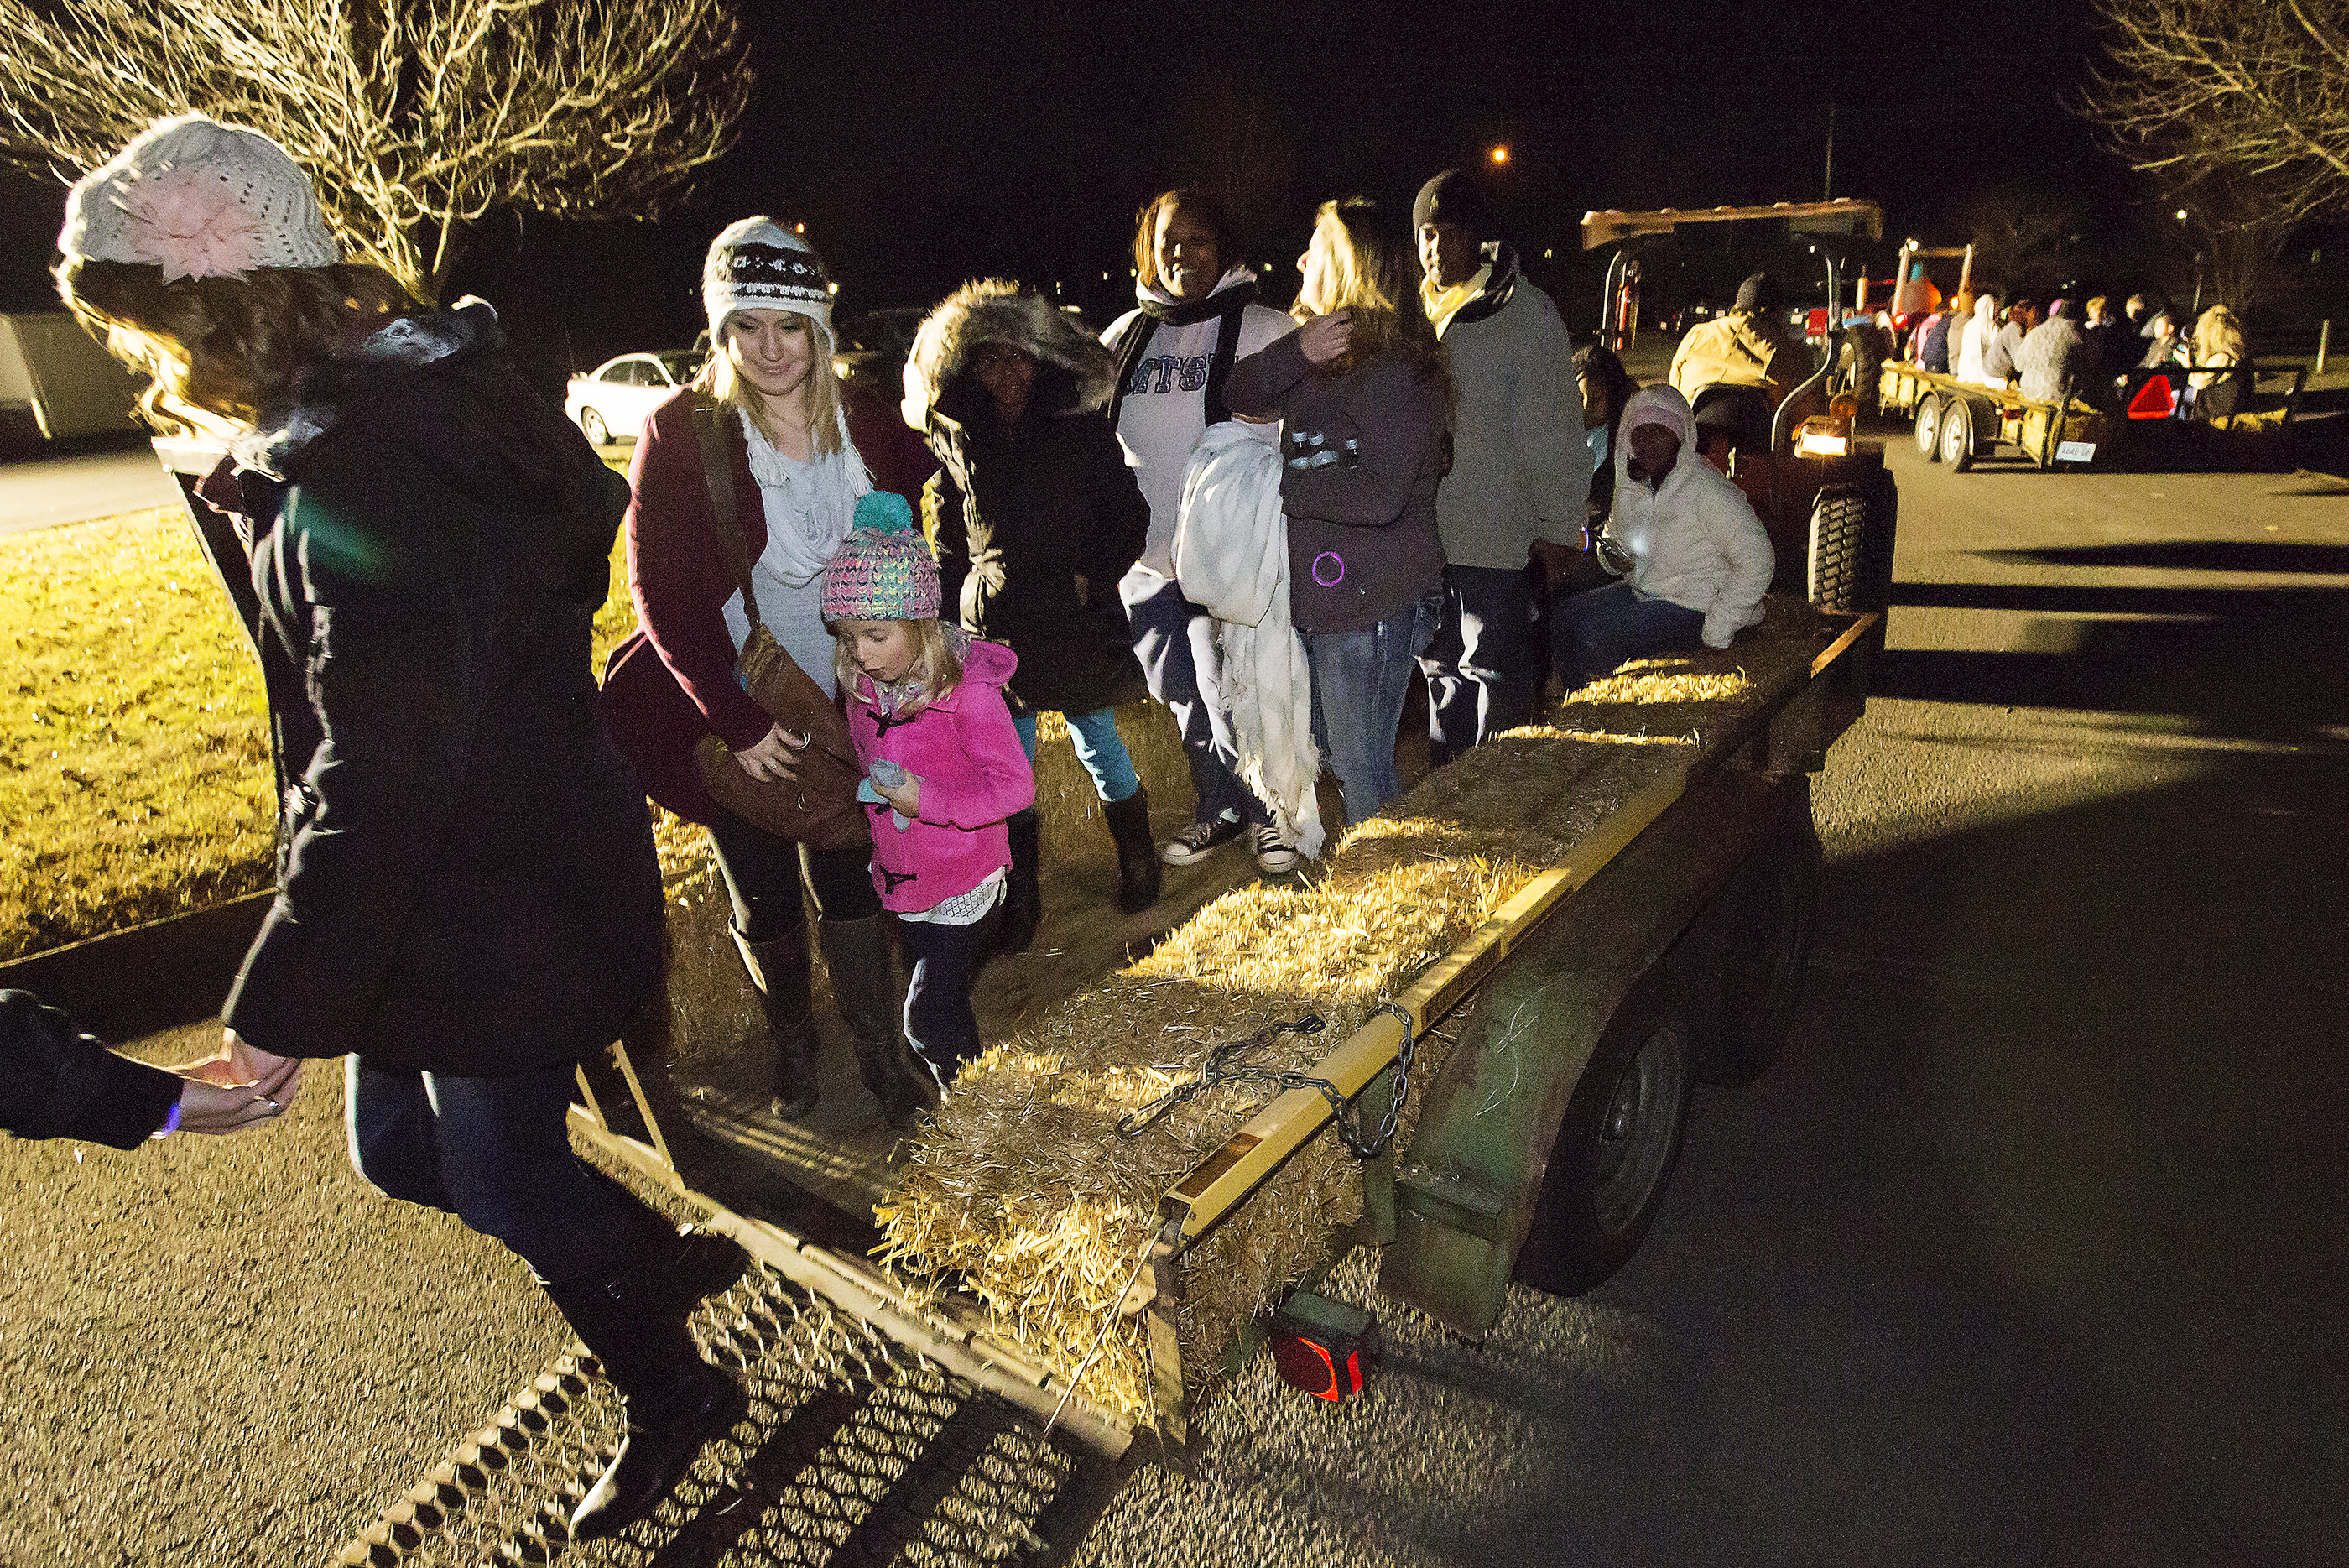 Murfreesboro Parks and Rec. Dept. recently held their 17th annual Fall Harvest Hayride